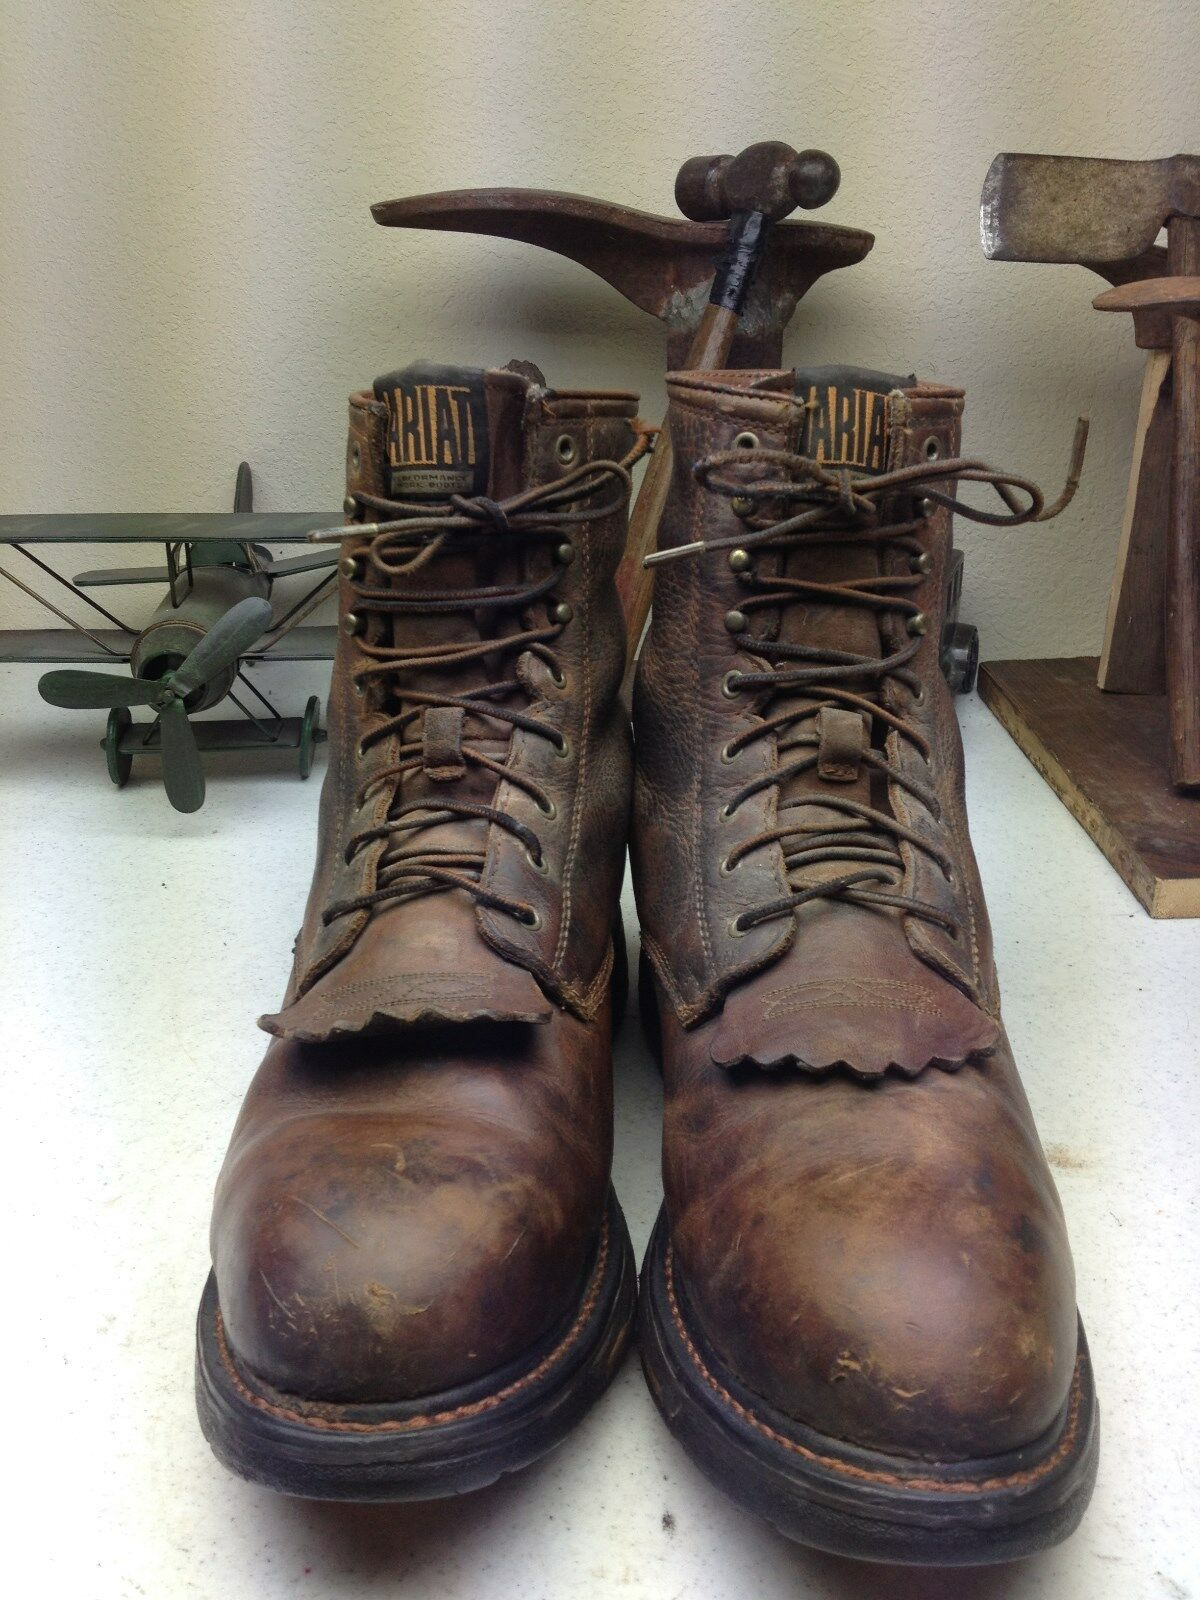 DISTRESSED BROWN LEATHER ARIAT LACE UP KILTIE KILTIE KILTIE WORK CHORE TRUCKER BOOTS SIZE 12EE 10bb85